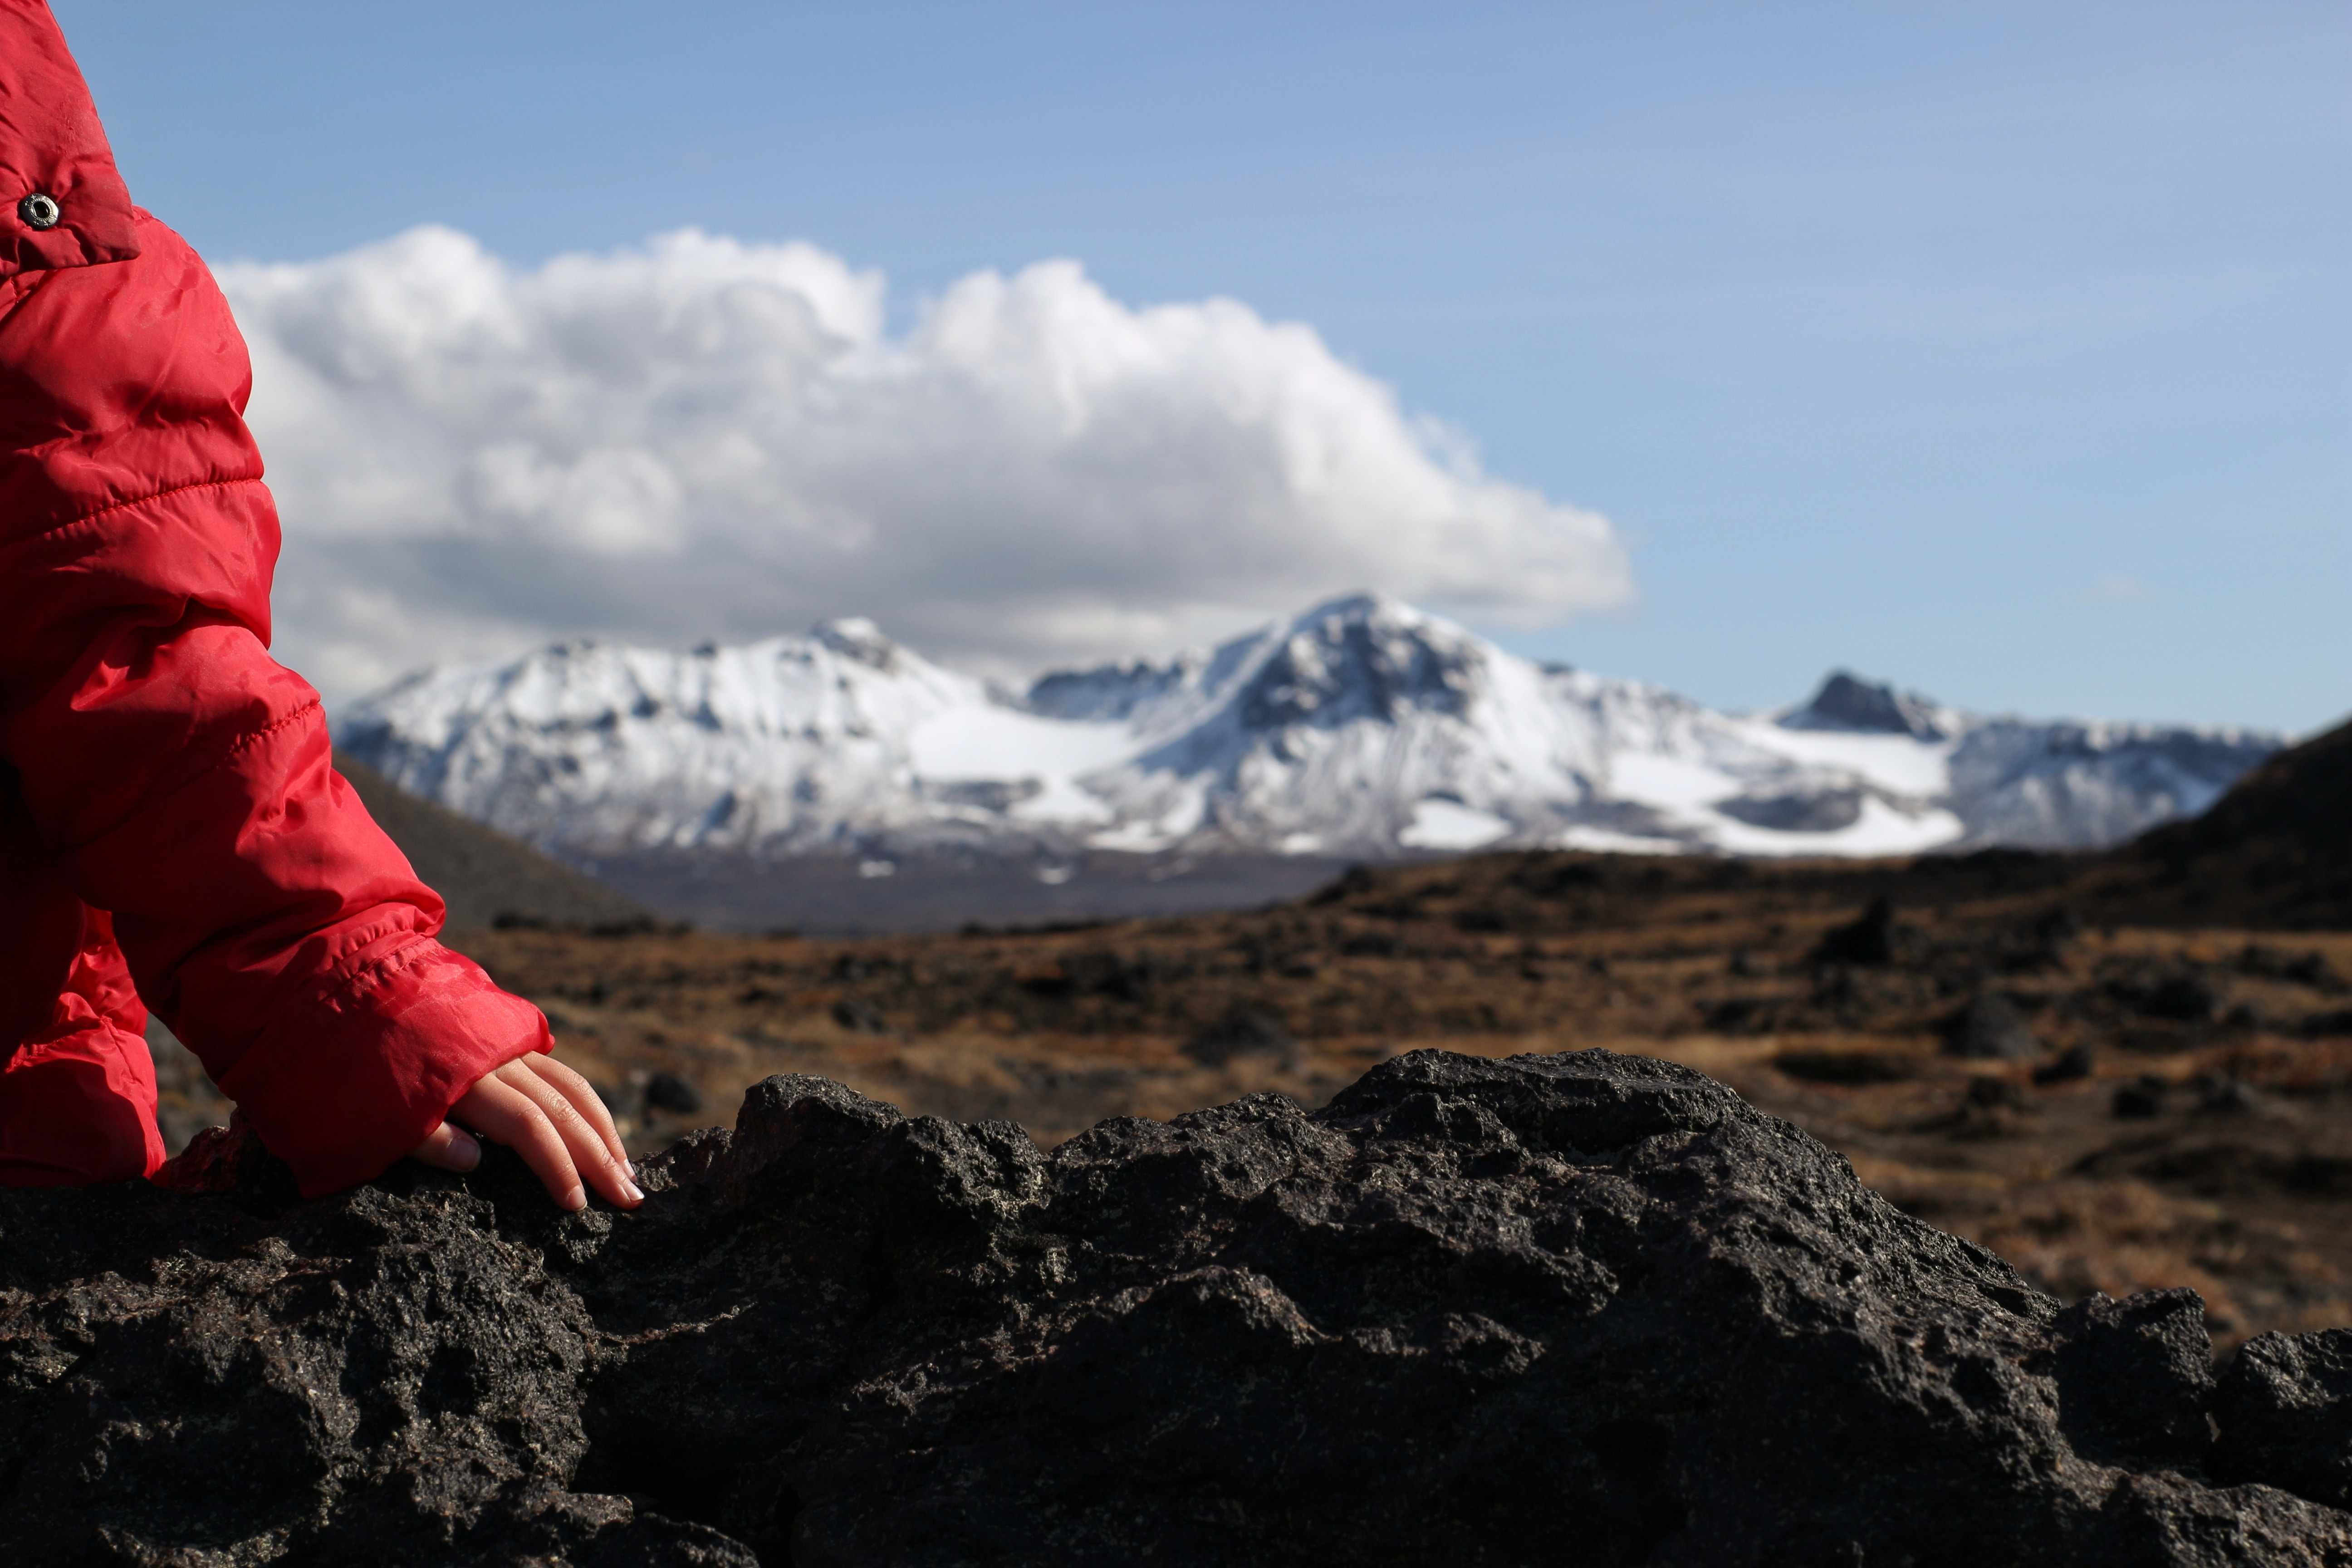 person in red jacket sitting on rock